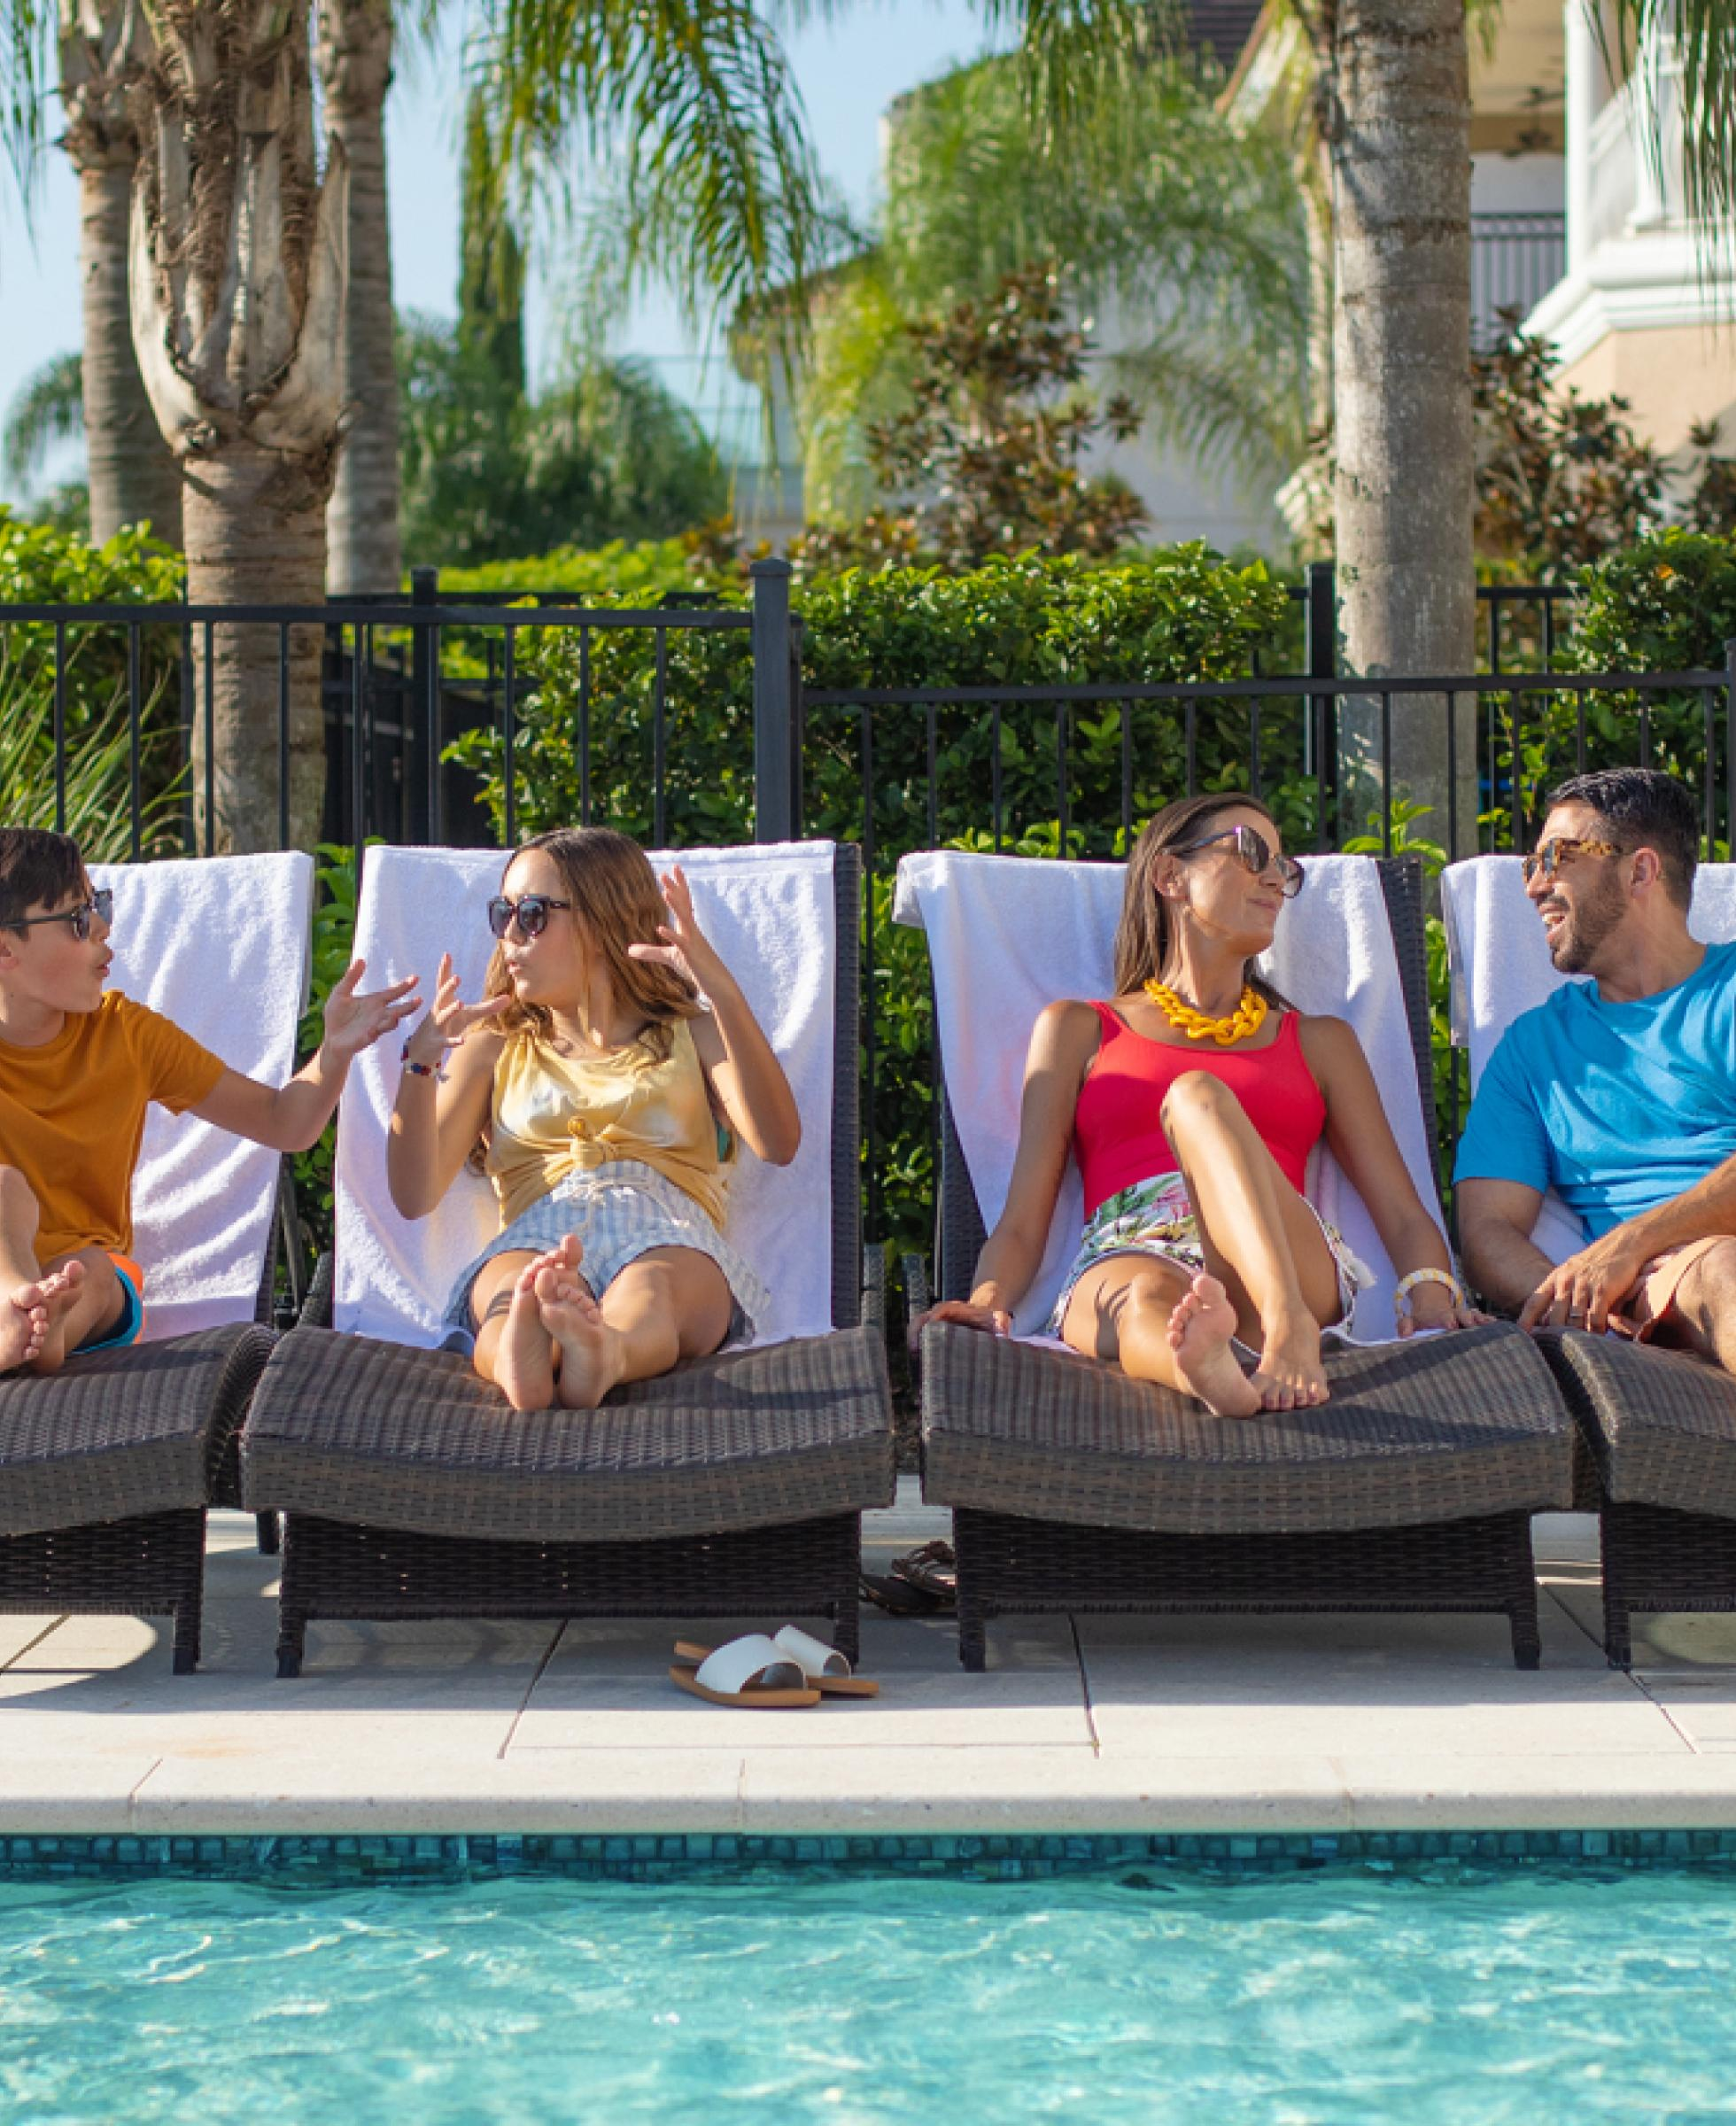 Family on pool chairs